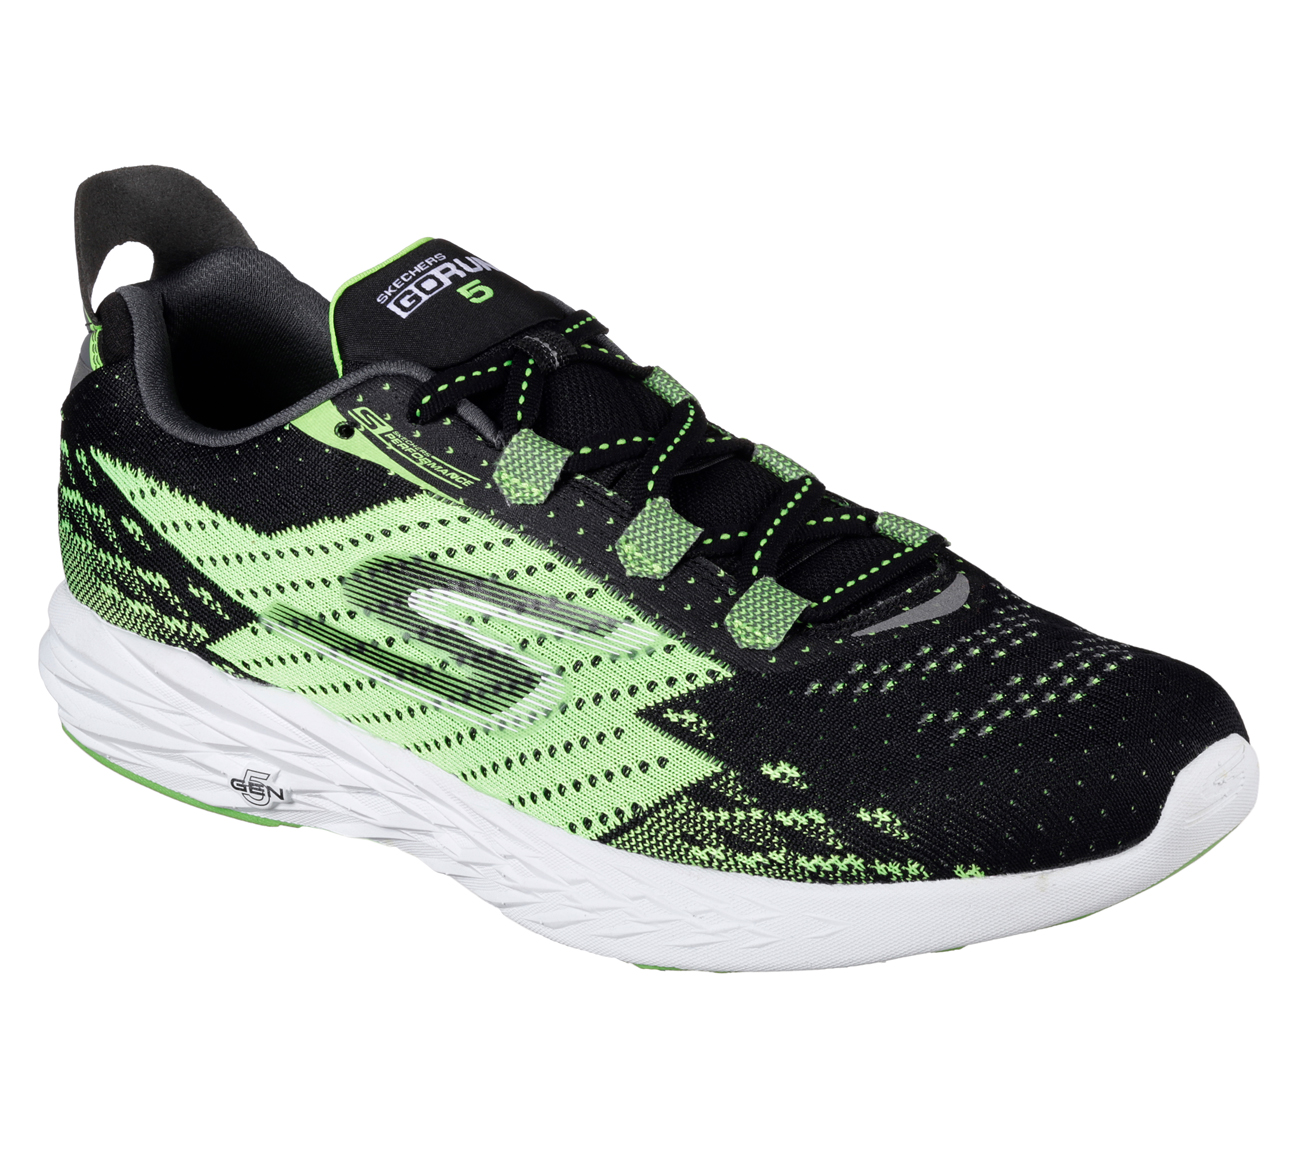 Buy Skechers Skechers Gorun 5 Skechers Performance Shoes